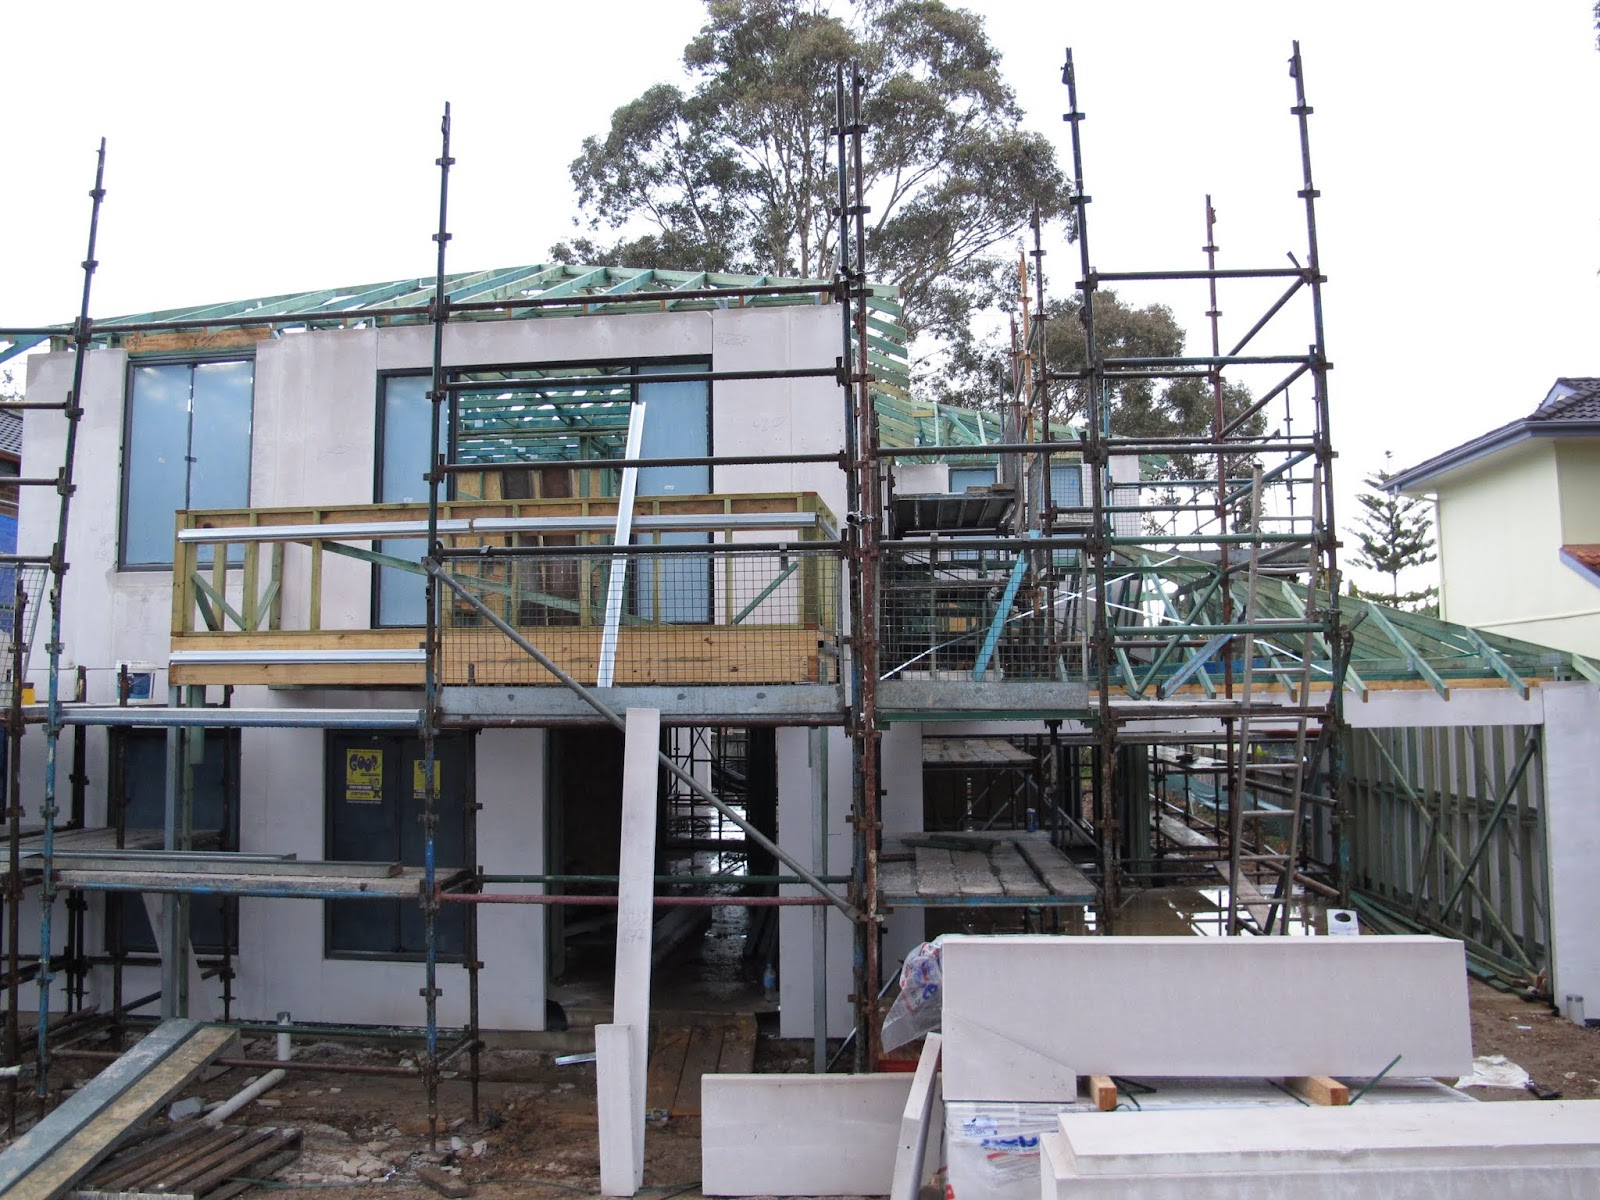 Our metricon nolan 41 journey kitchen and vanity cabinetry - Our Metricon Nolan 41 Journey Scaffolding Installed Download